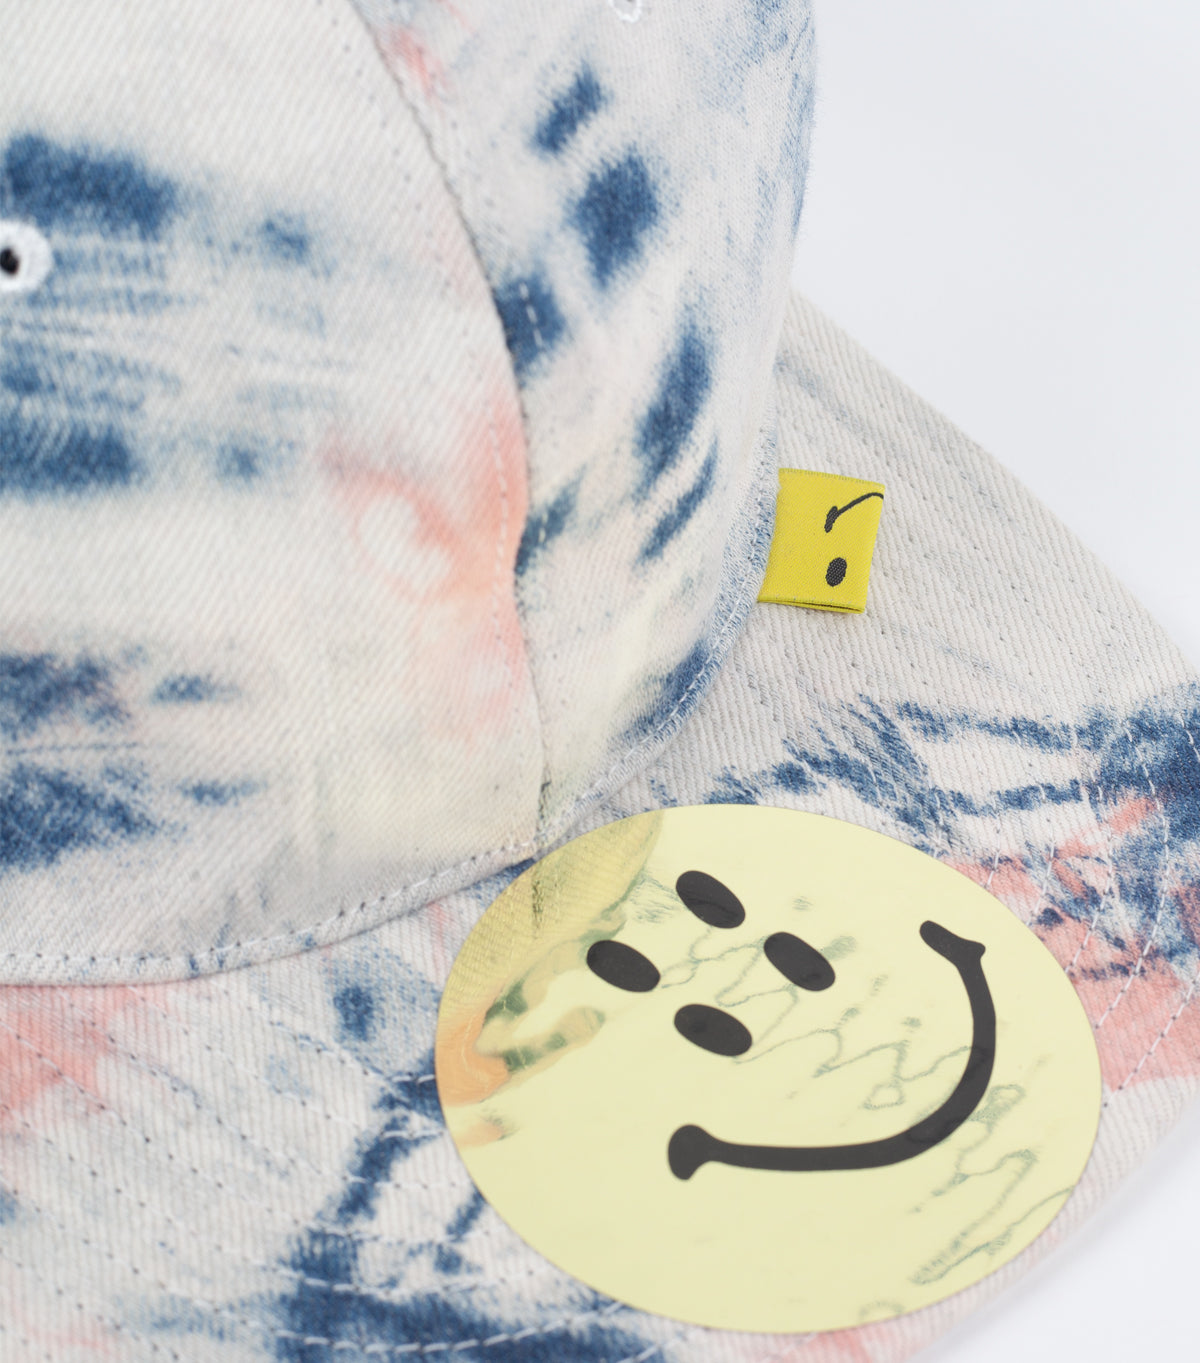 Kapital Kountry 11.5oz Denim Baseball Hat Ashbury Dye | somewhereofficial.